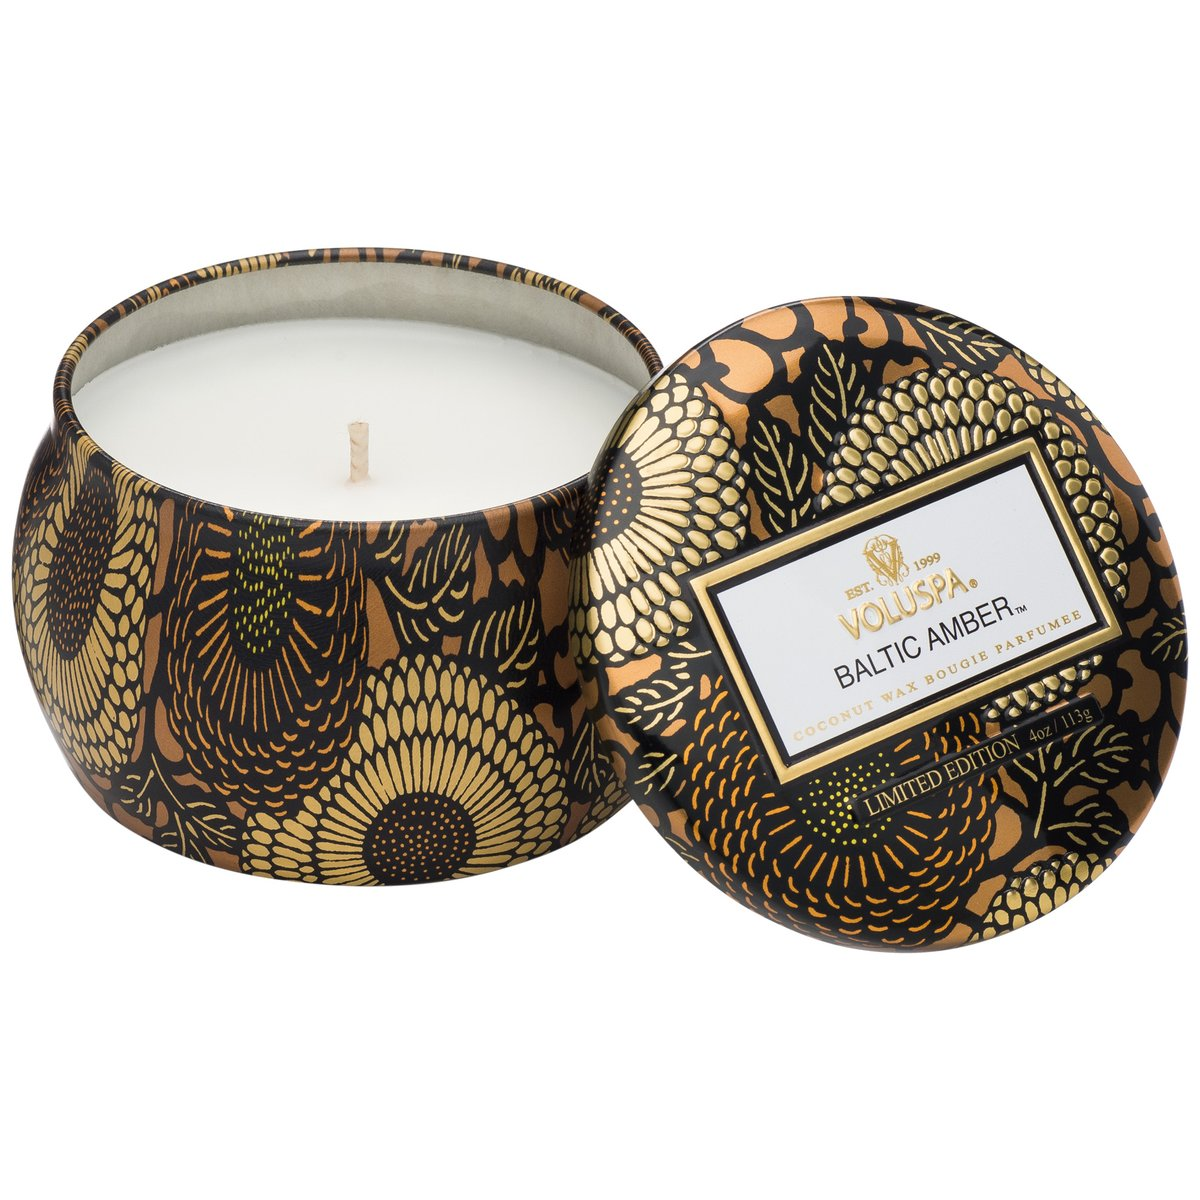 Notes of Amber Resin, Sandalwood, Vanilla Orchid. The perfect size to pepper throughout a room, you'll enjoy a clean burn with our proprietary coconut wax blend.